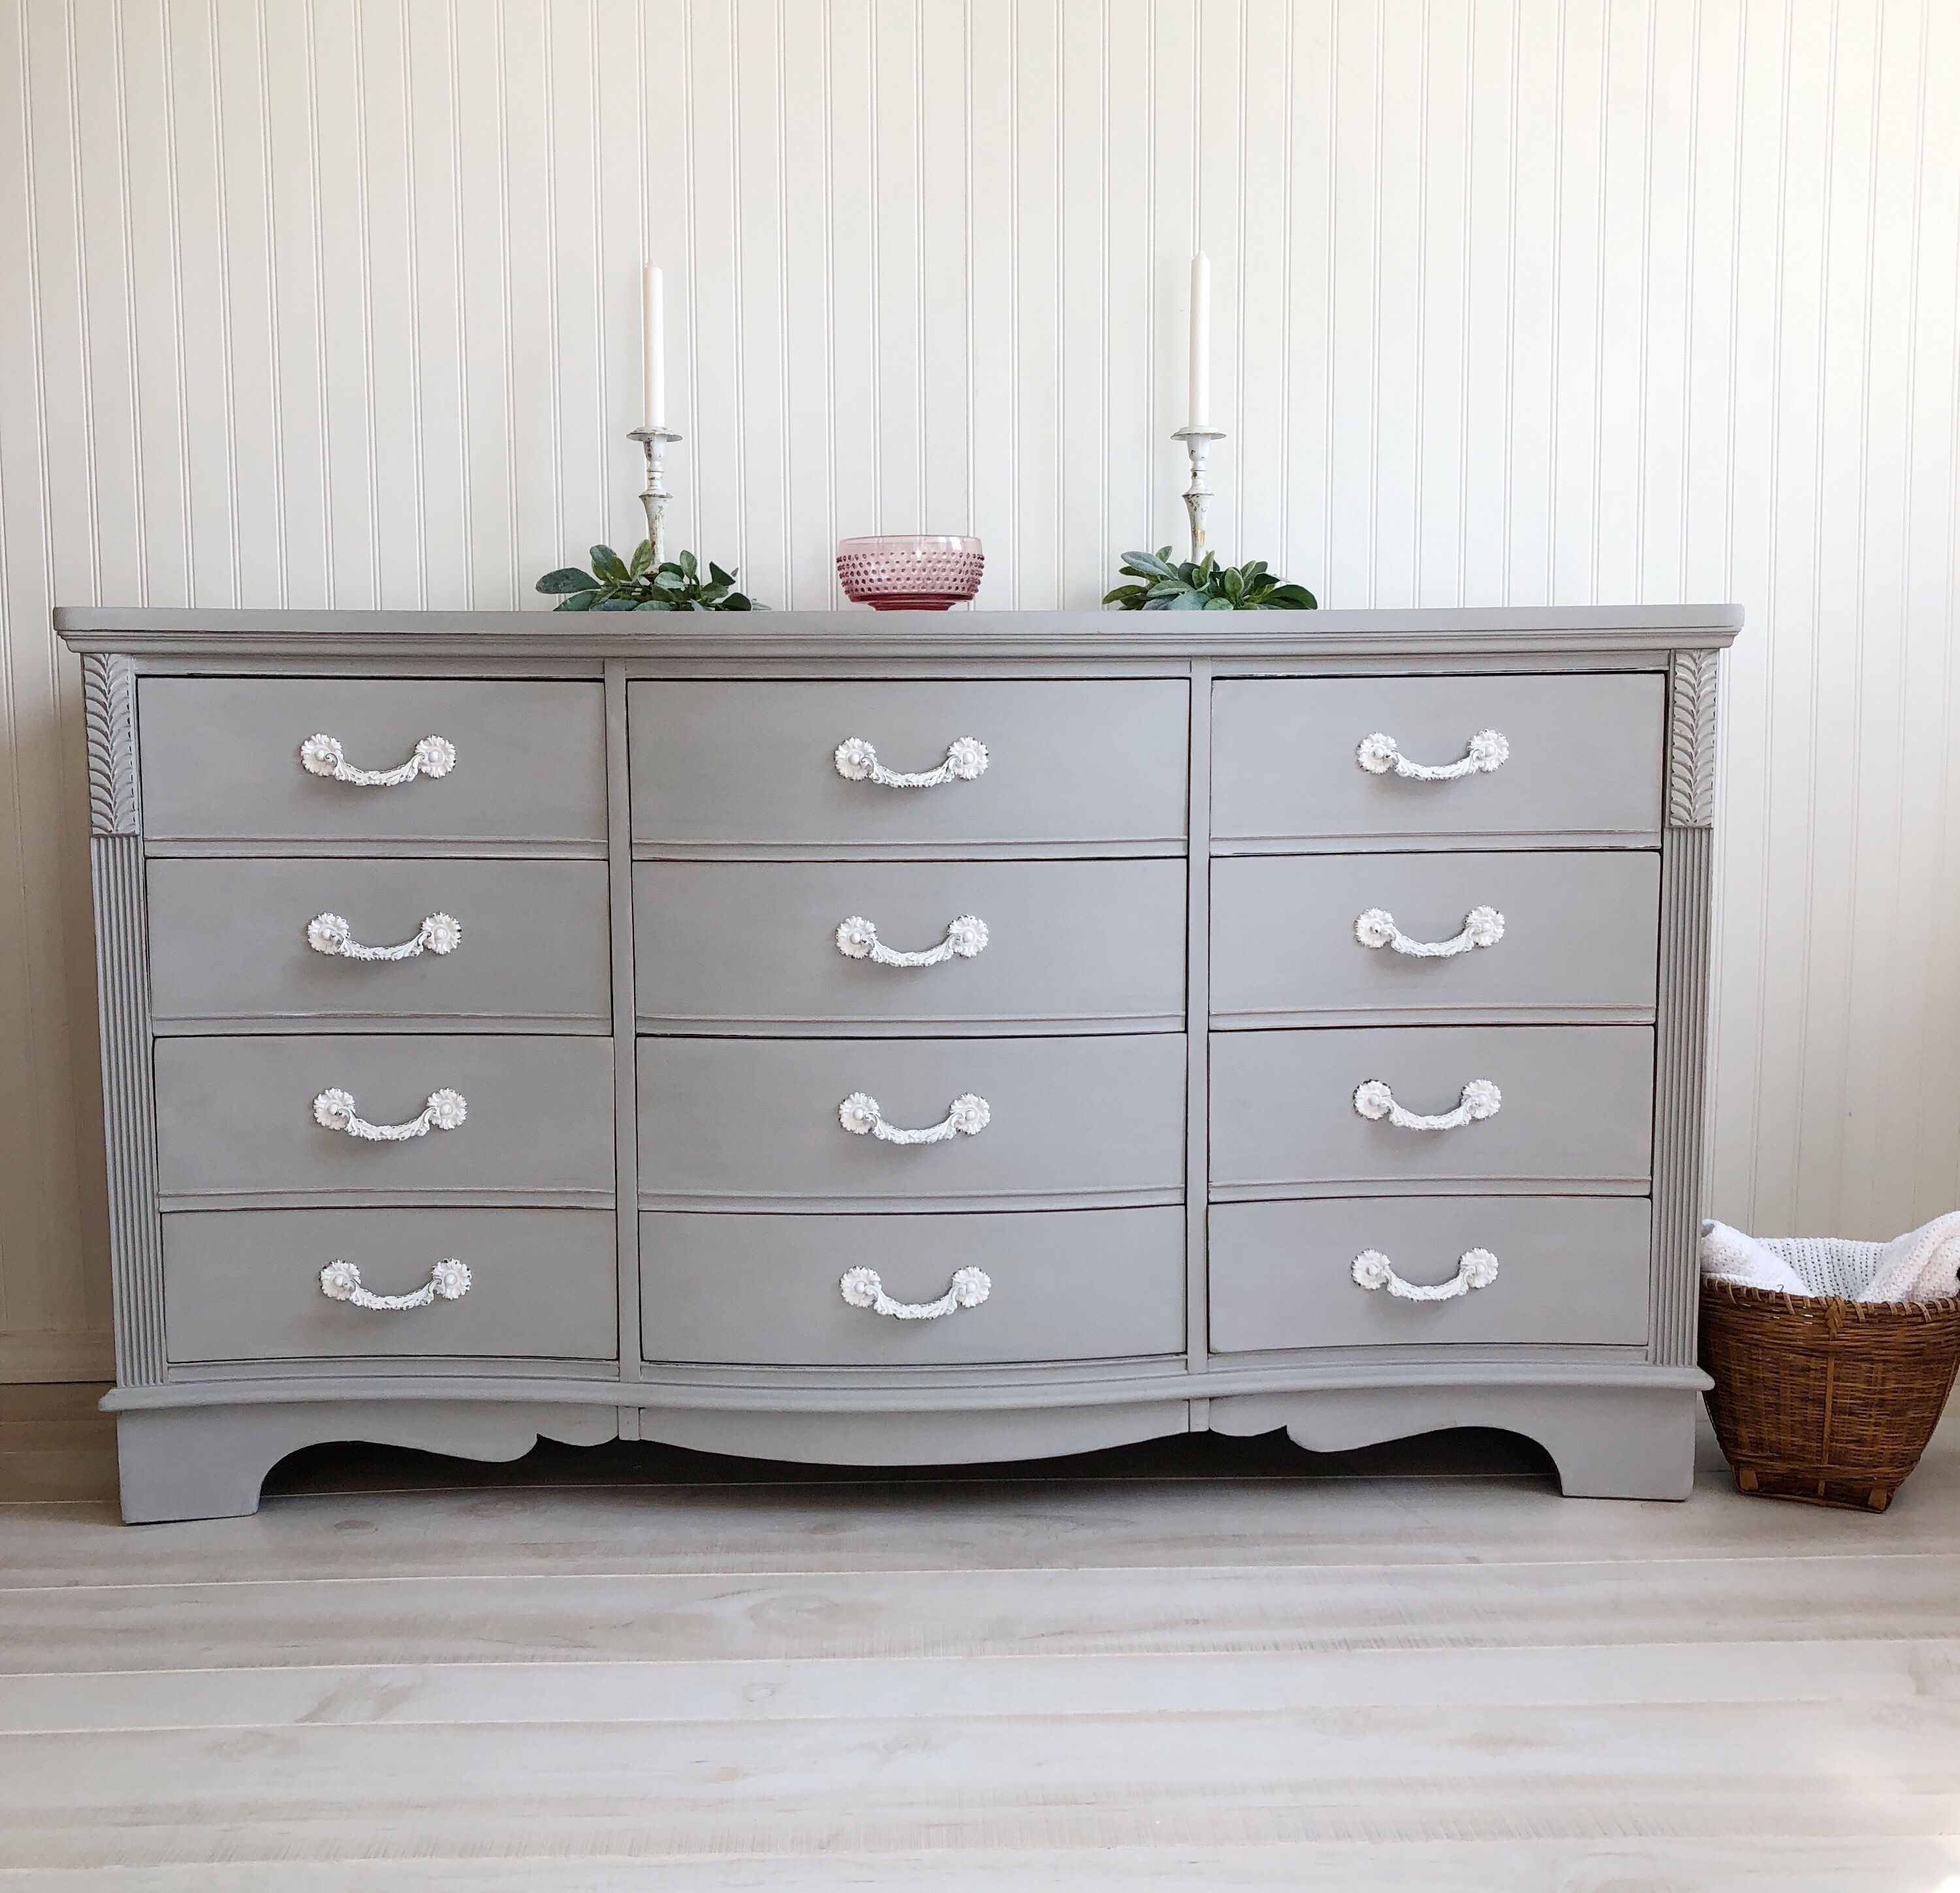 Annie Sloan Paris Gray Chalk Paint Makeover French Provincial Dres Annie Sloan Painted Furniture Painted Bedroom Furniture French Provincial Dresser Makeover